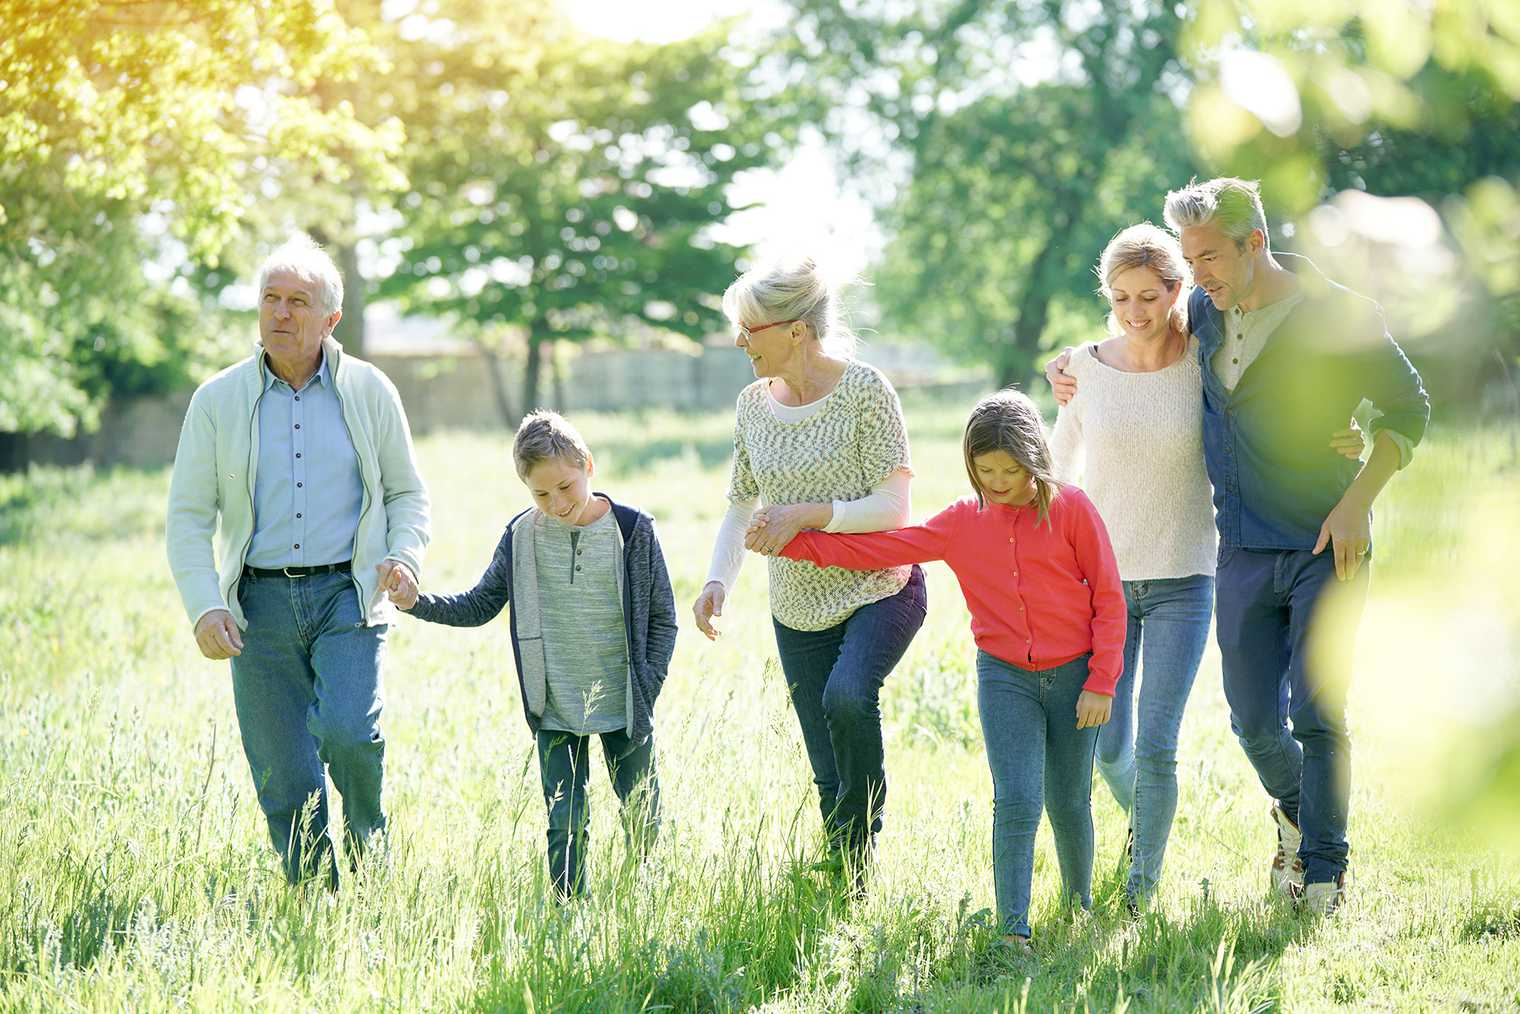 An extended family enjoying the landscaped gardens of a retirement village.